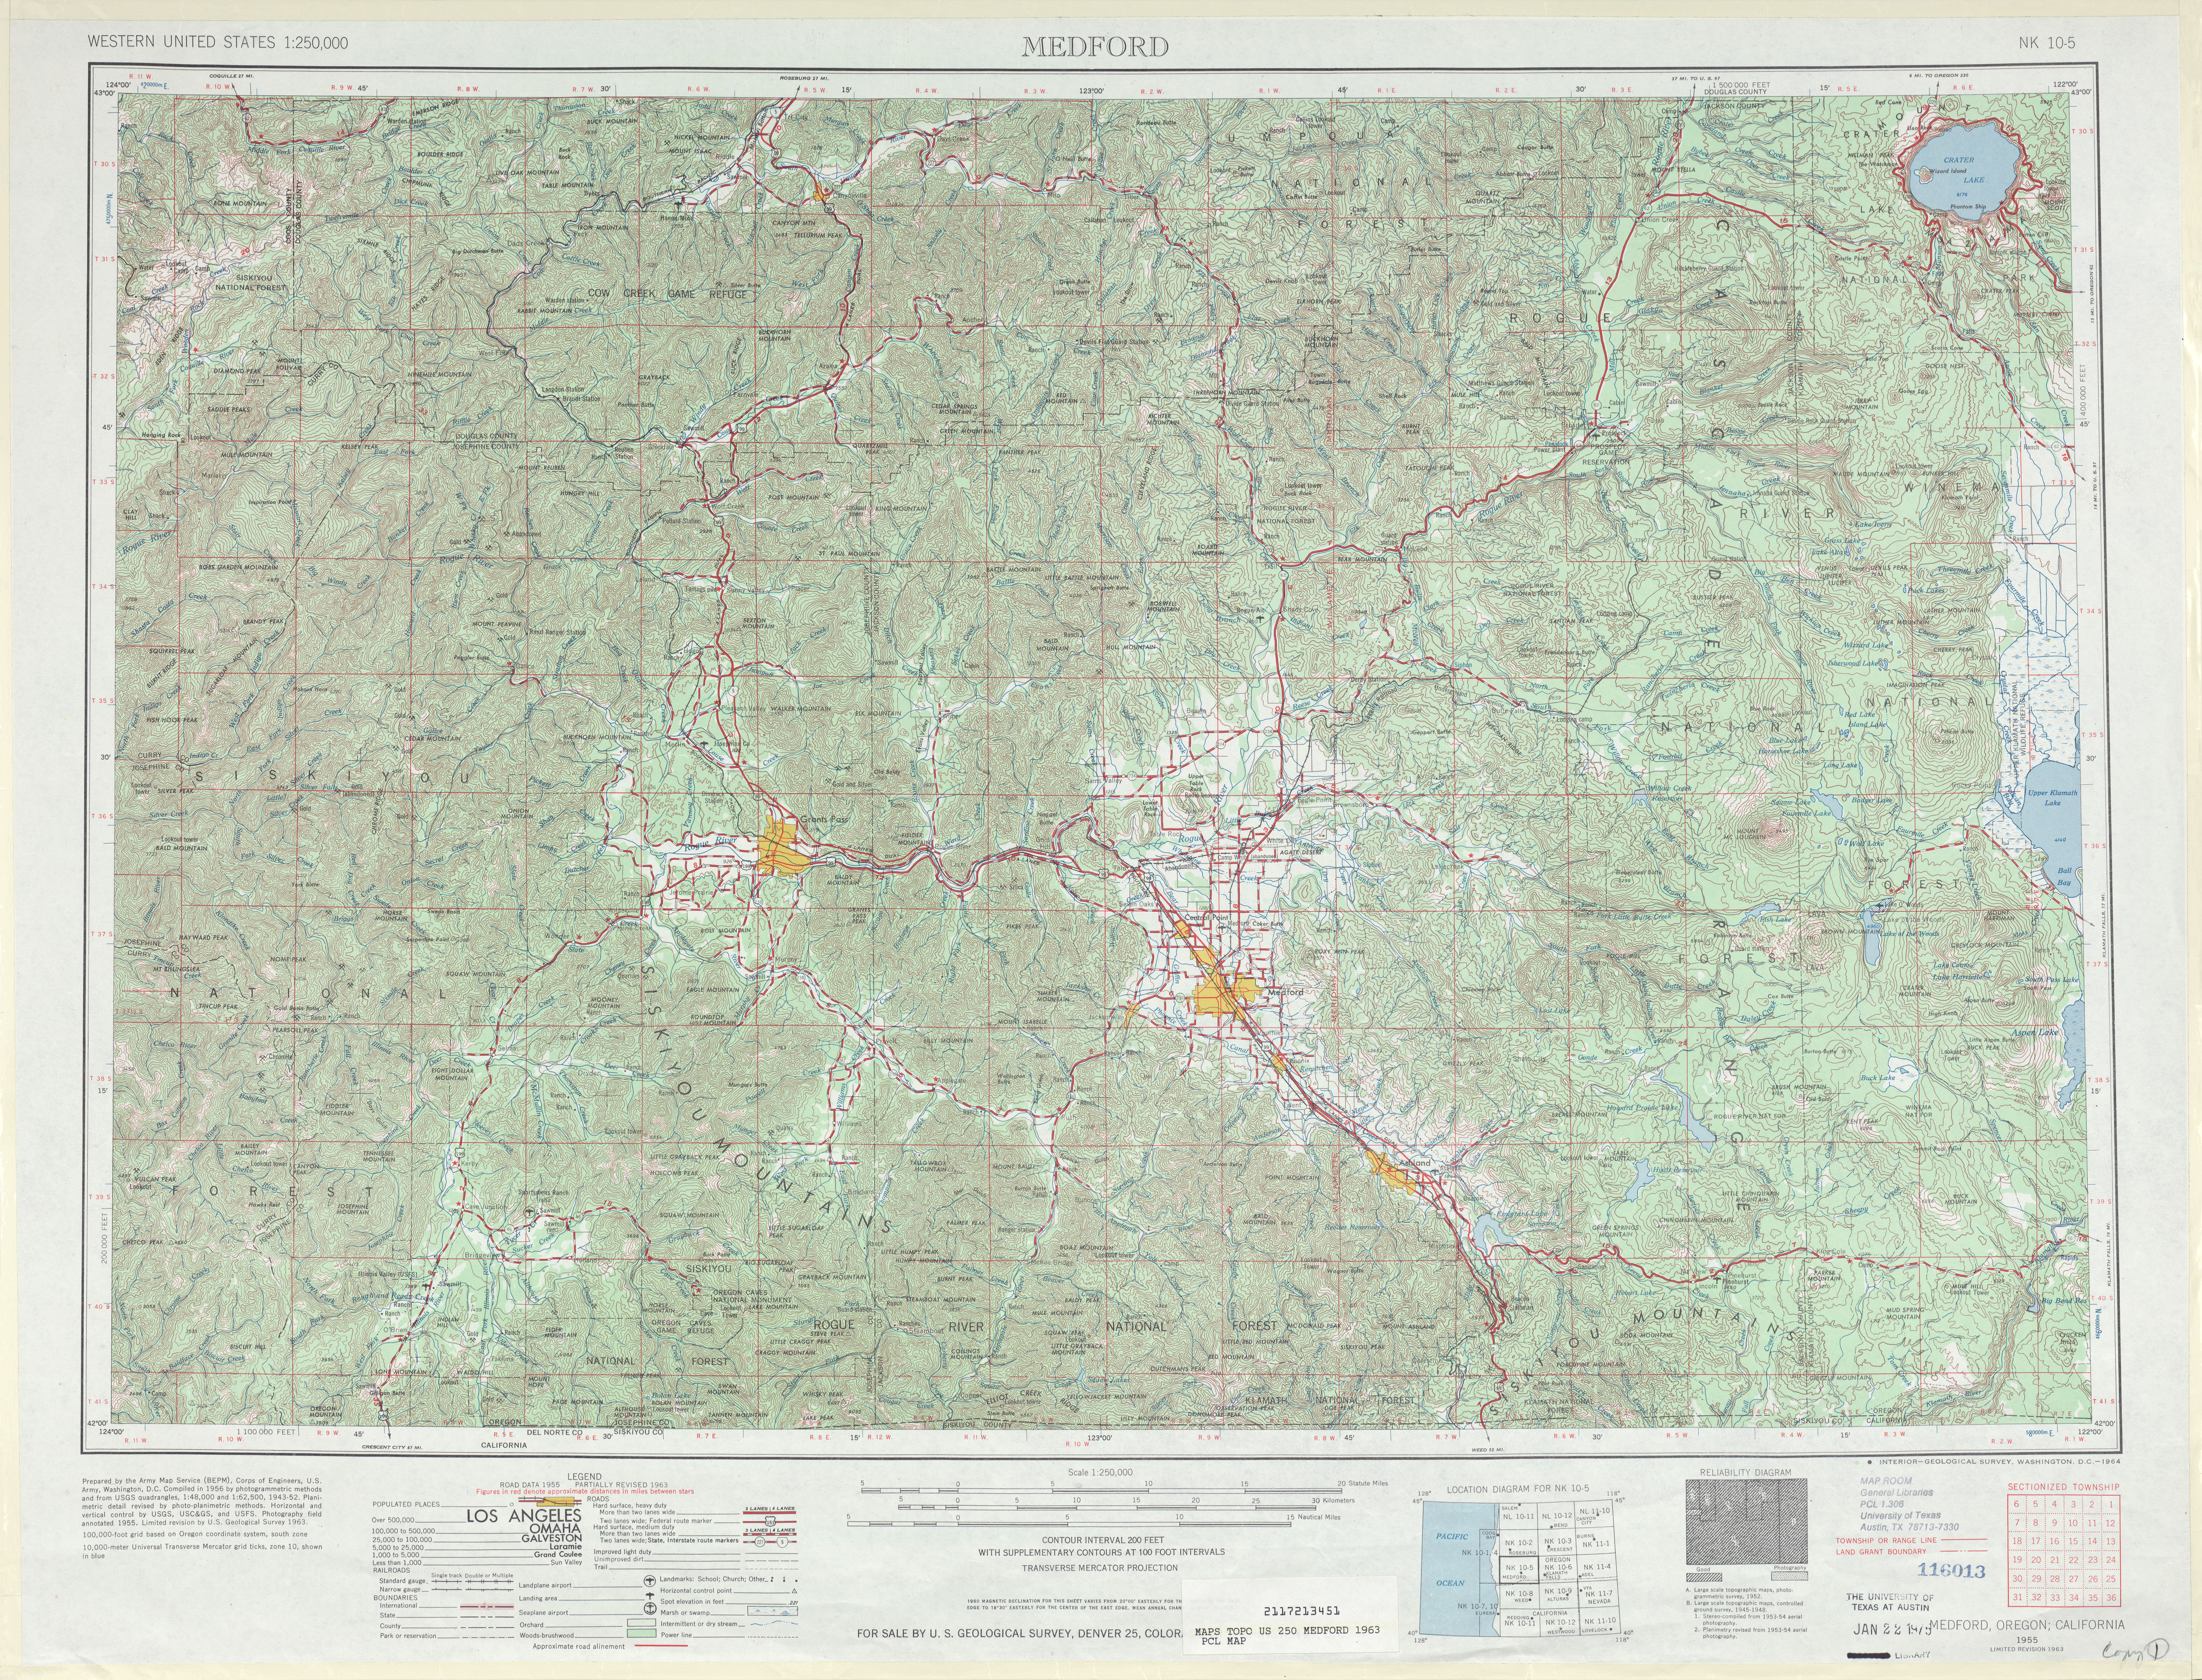 Medford Topographic Map Sheet, United States 1963